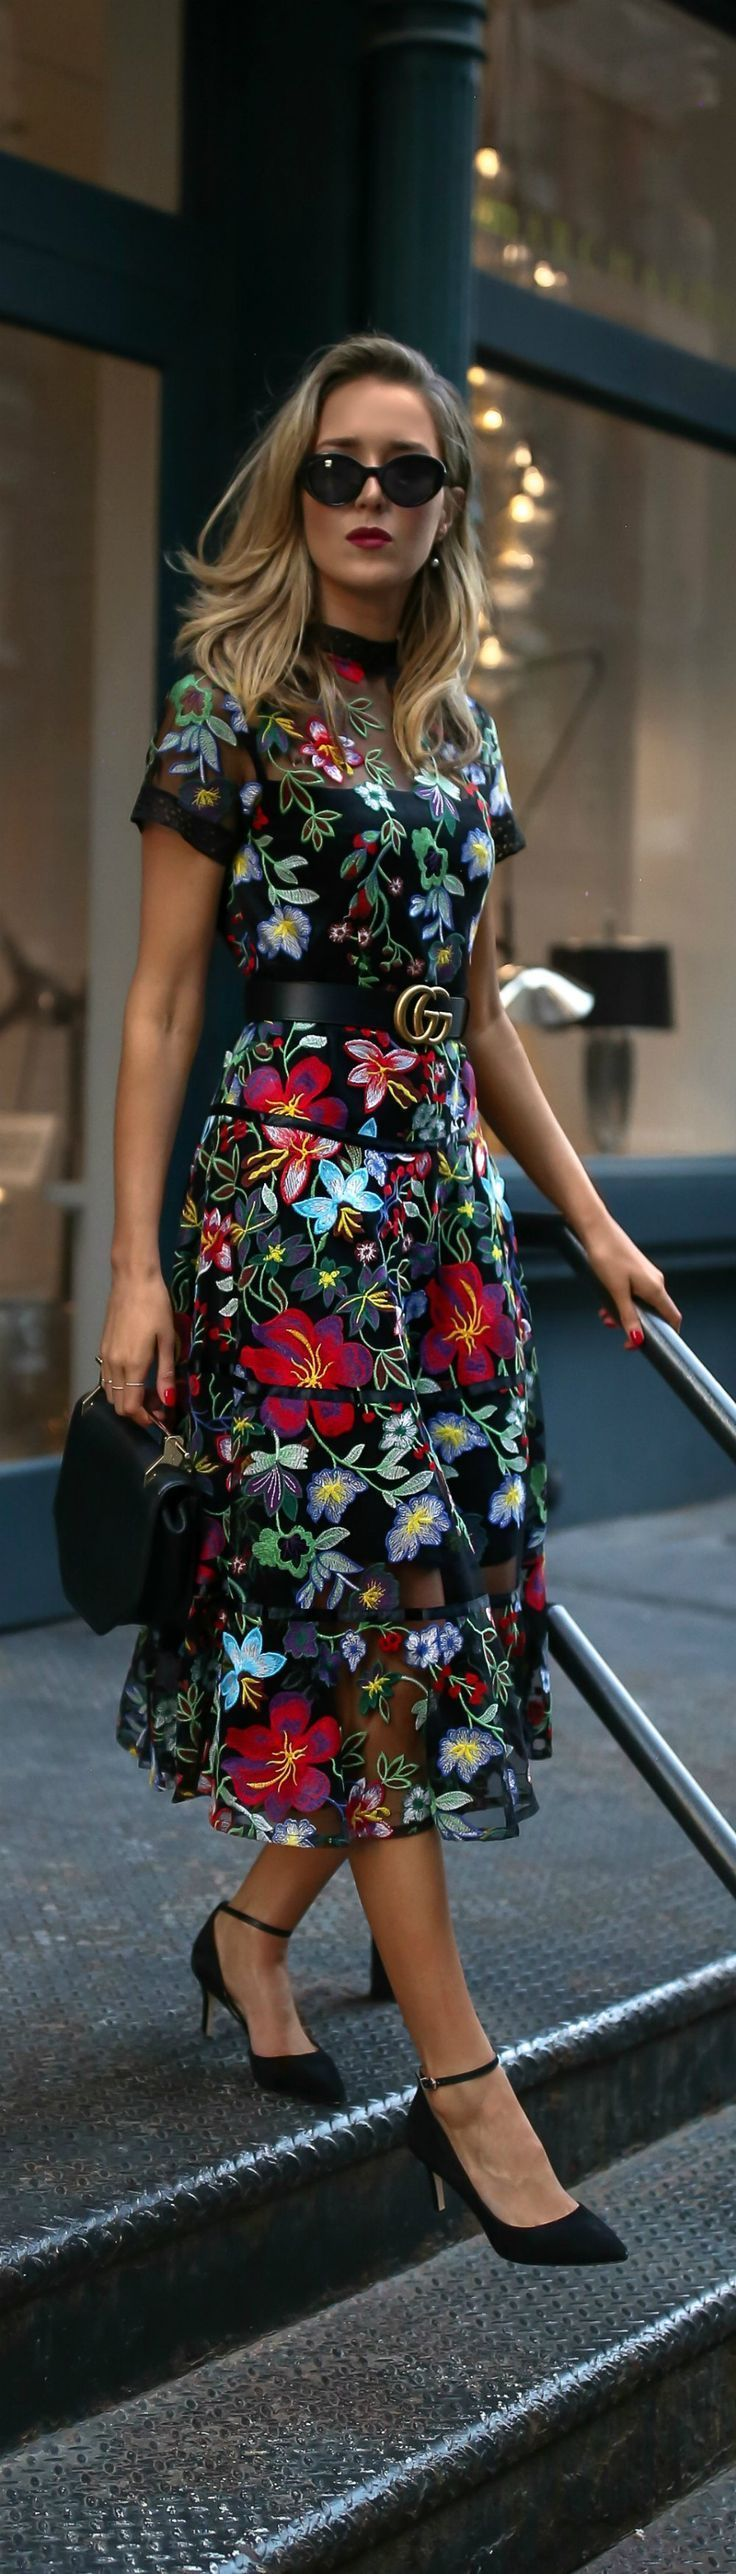 Fall Florals // Floral print embroidered midi dress, leather waist belt, ankle strap pumps, mini shoulder bag, cat eye sunglasses, pearl drop earrings {Anthropologie, Gucci, Sam Edelman, Marc Jacobs, fall winter 2017 trends, fall trends, fashion trends, classic style}